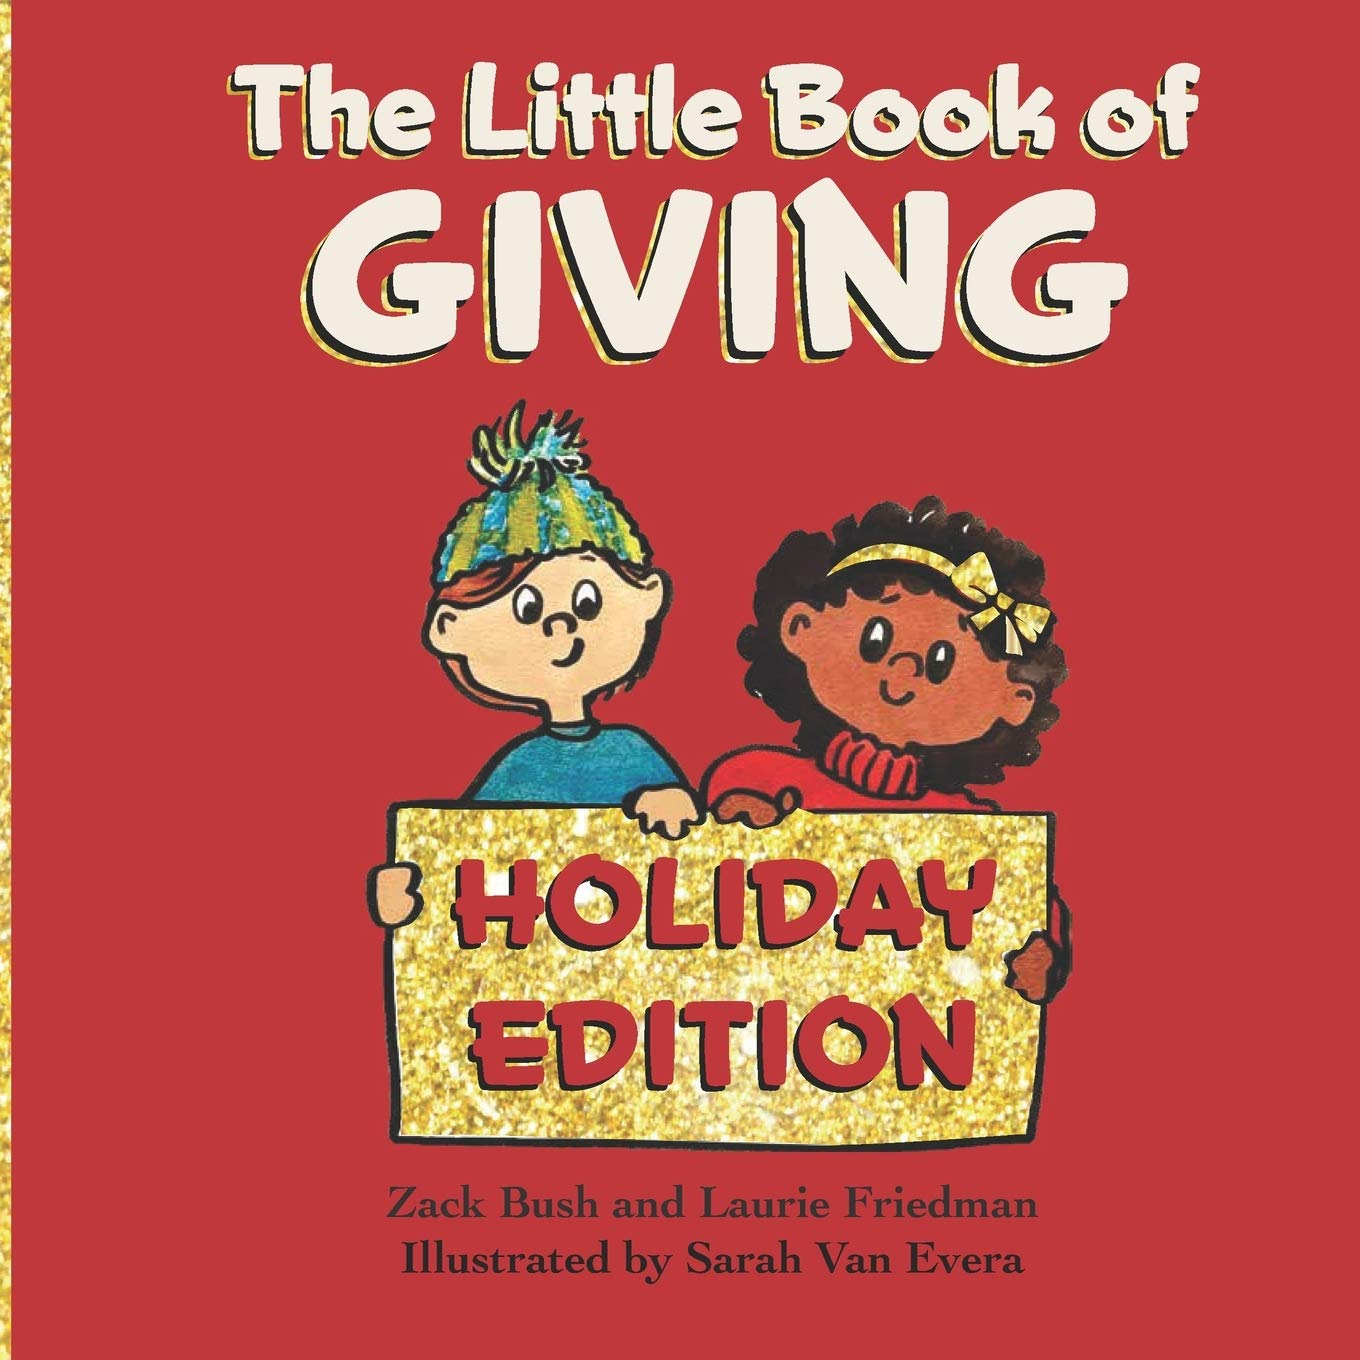 The Little Book of Giving: (Children's Book about Holiday Giving, Giving for the Holiday Season, Giving from the Heart, Kids Ages 3 10, Preschool, Kindergarten, First Grade)